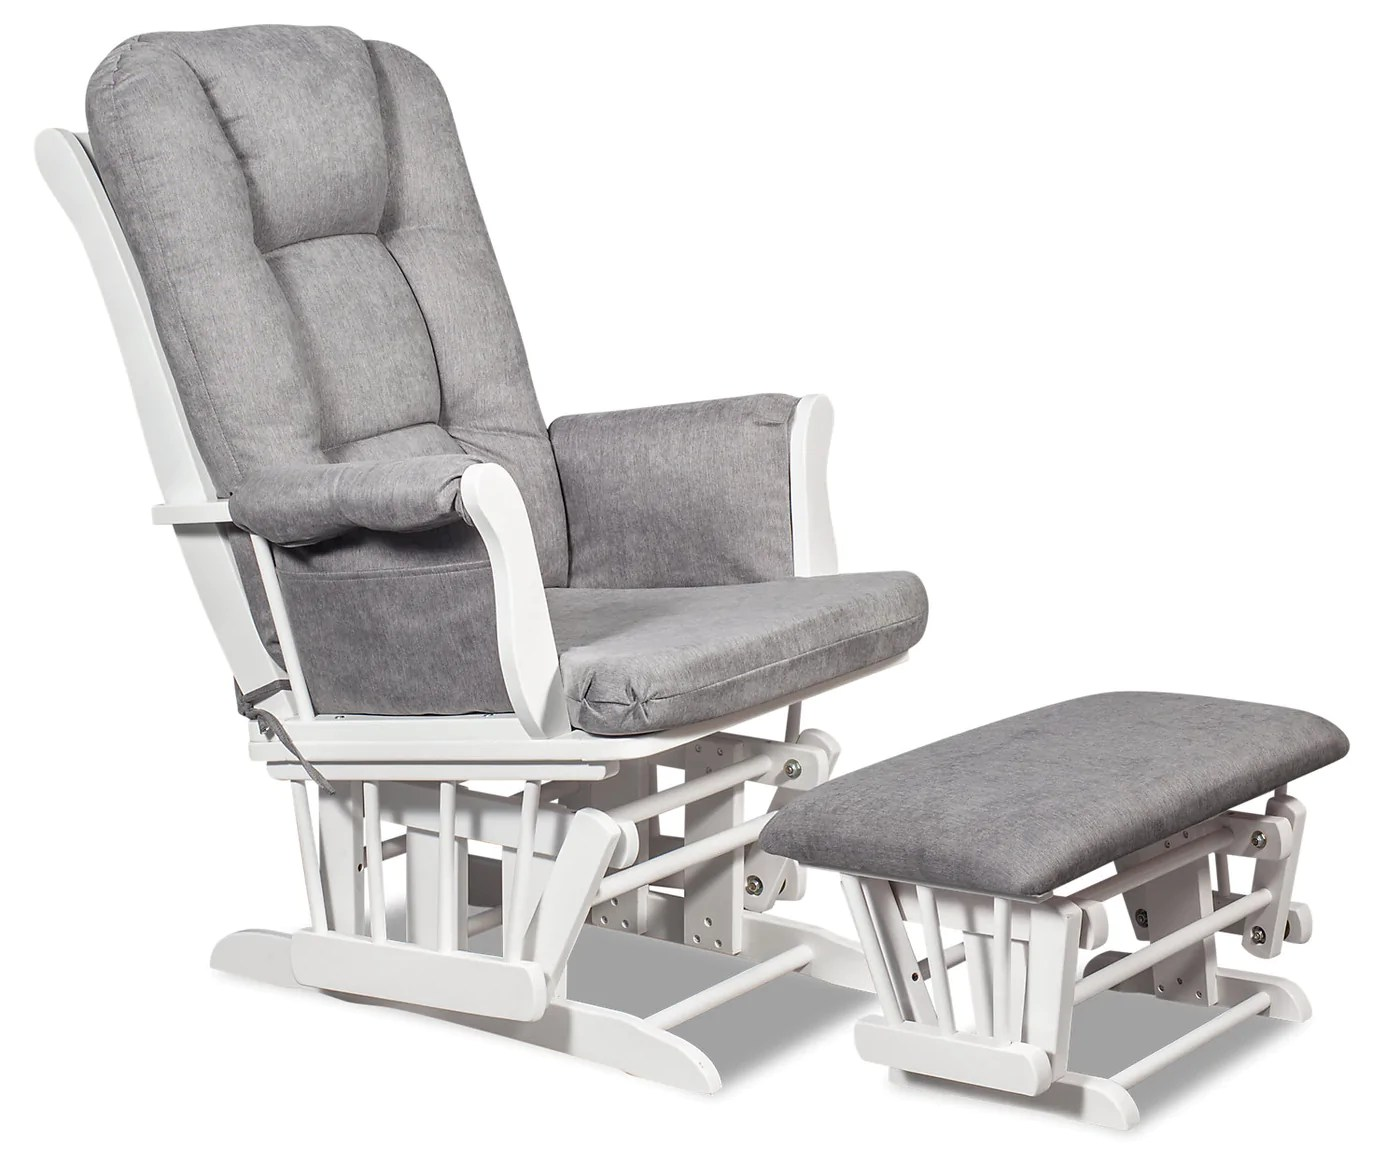 Gliding Chair Anita Microsuede Gliding Chair With Ottoman White And Grey